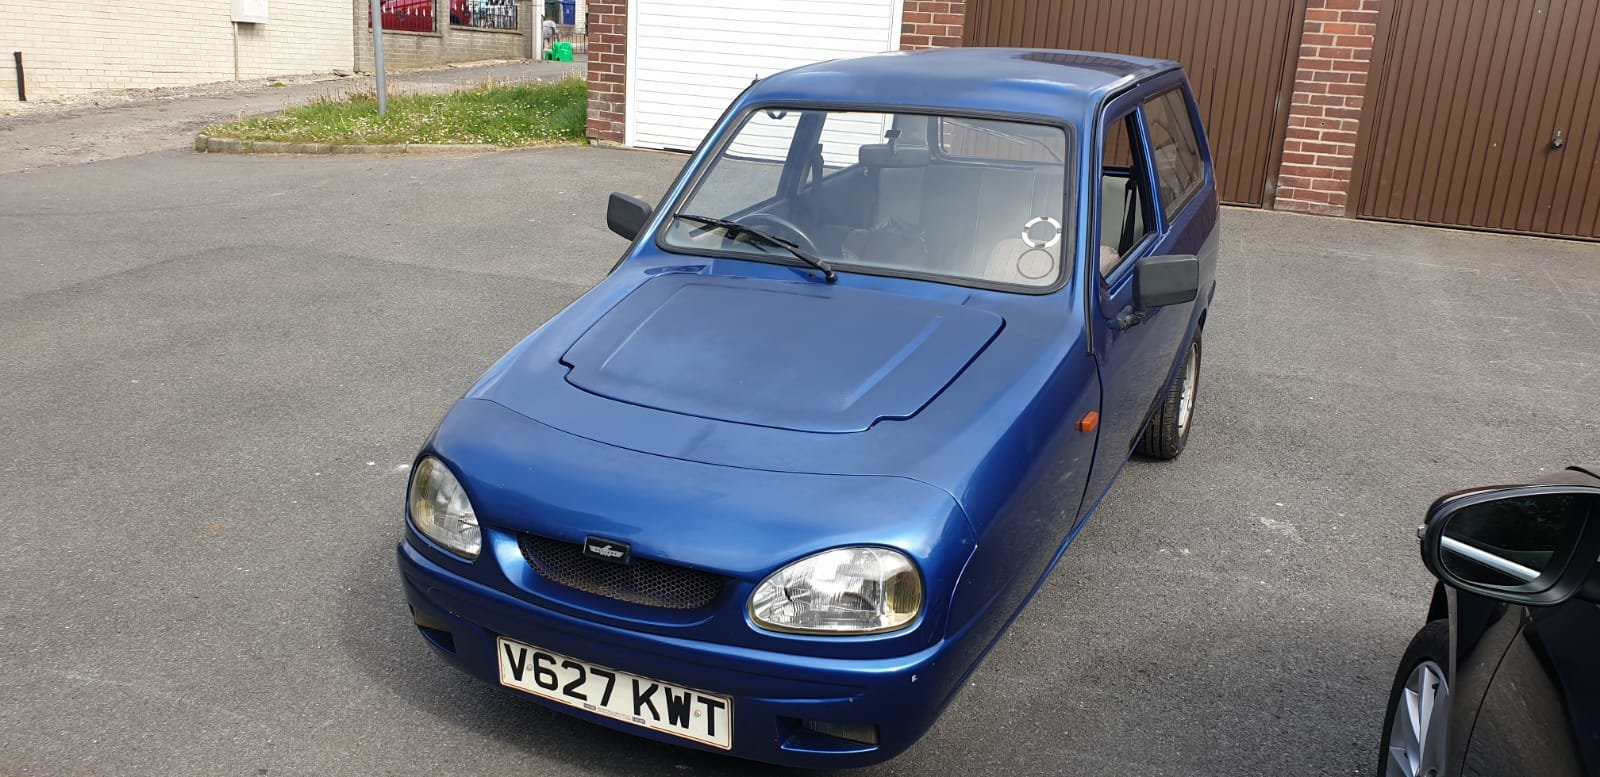 1999 Reliant robin slx v reg  For Sale (picture 1 of 5)